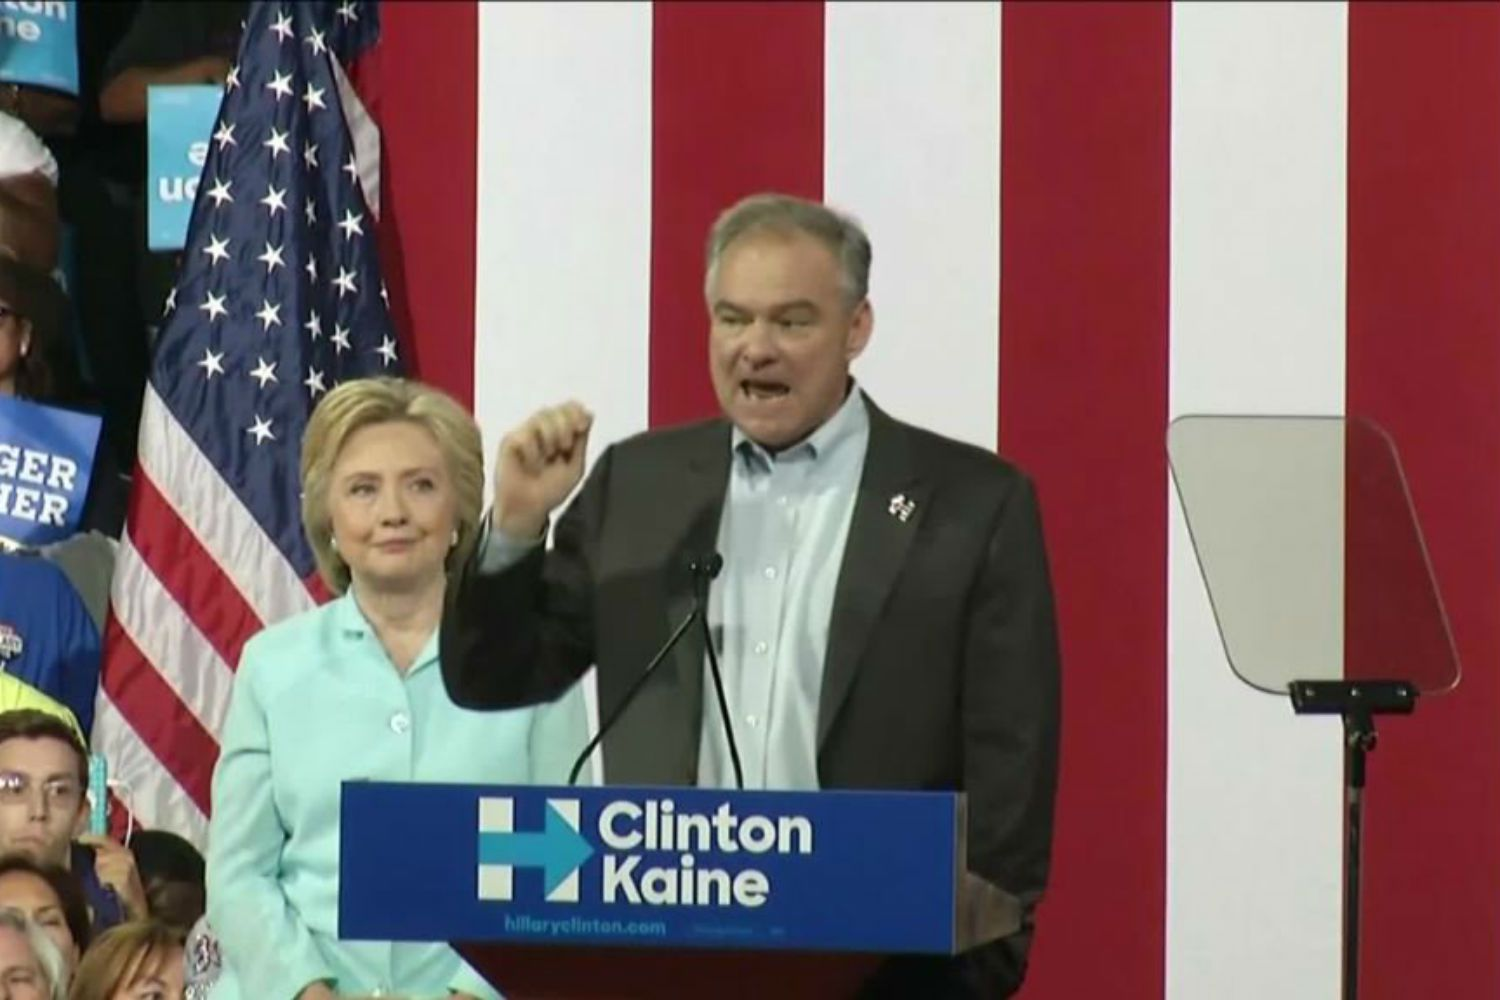 Tim Kaine speaks at the podium while Hillary Clinton looks on